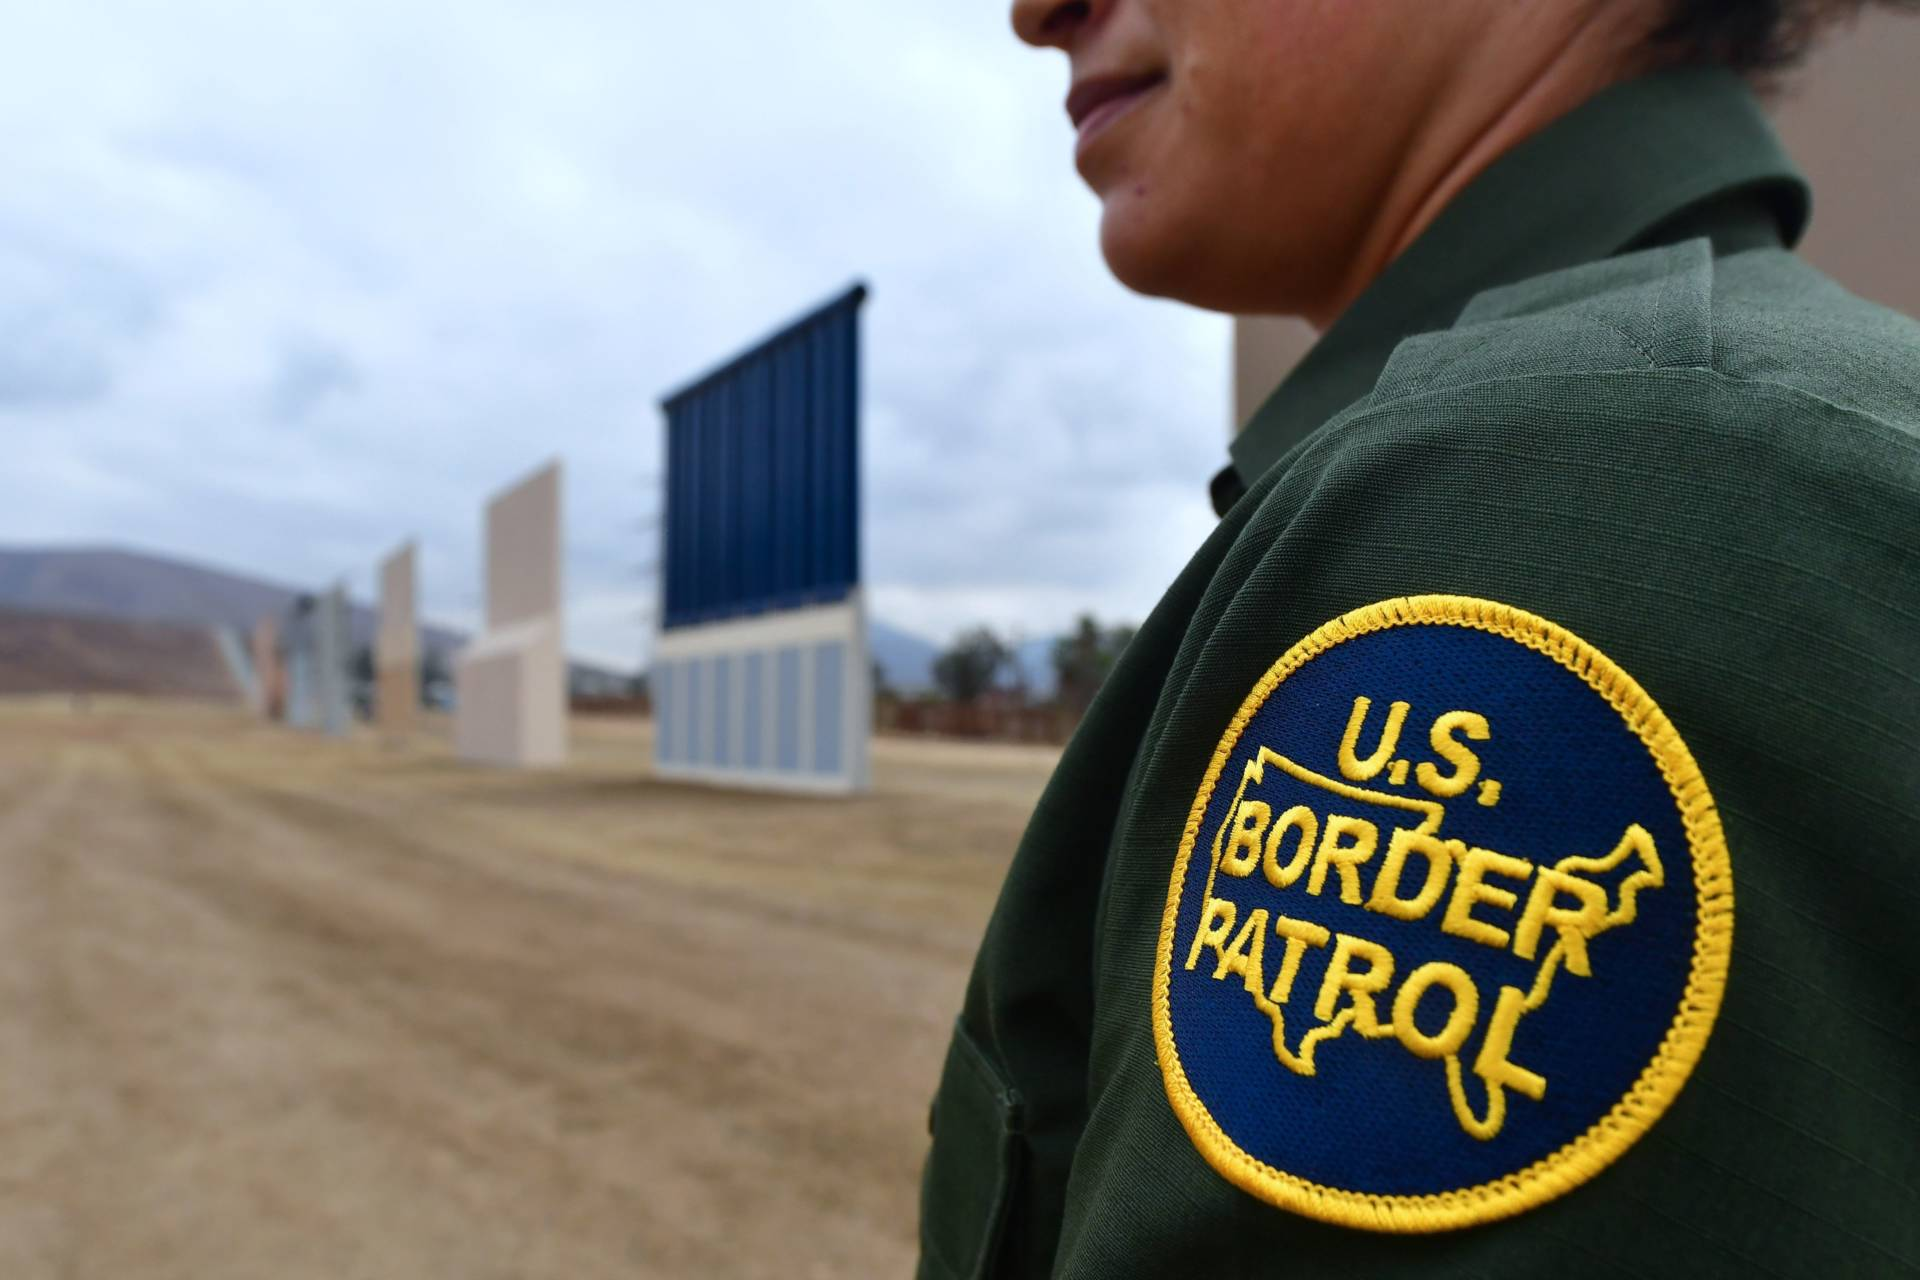 A U.S. Border Patrol officer stands near prototypes of President Trump's proposed border wall in San Diego. Border officers apprehended 310,531 people for being in the country illegally in fiscal 2017, a 25 percent decrease from the year before. Frederic J. Brown/AFP/Getty Images